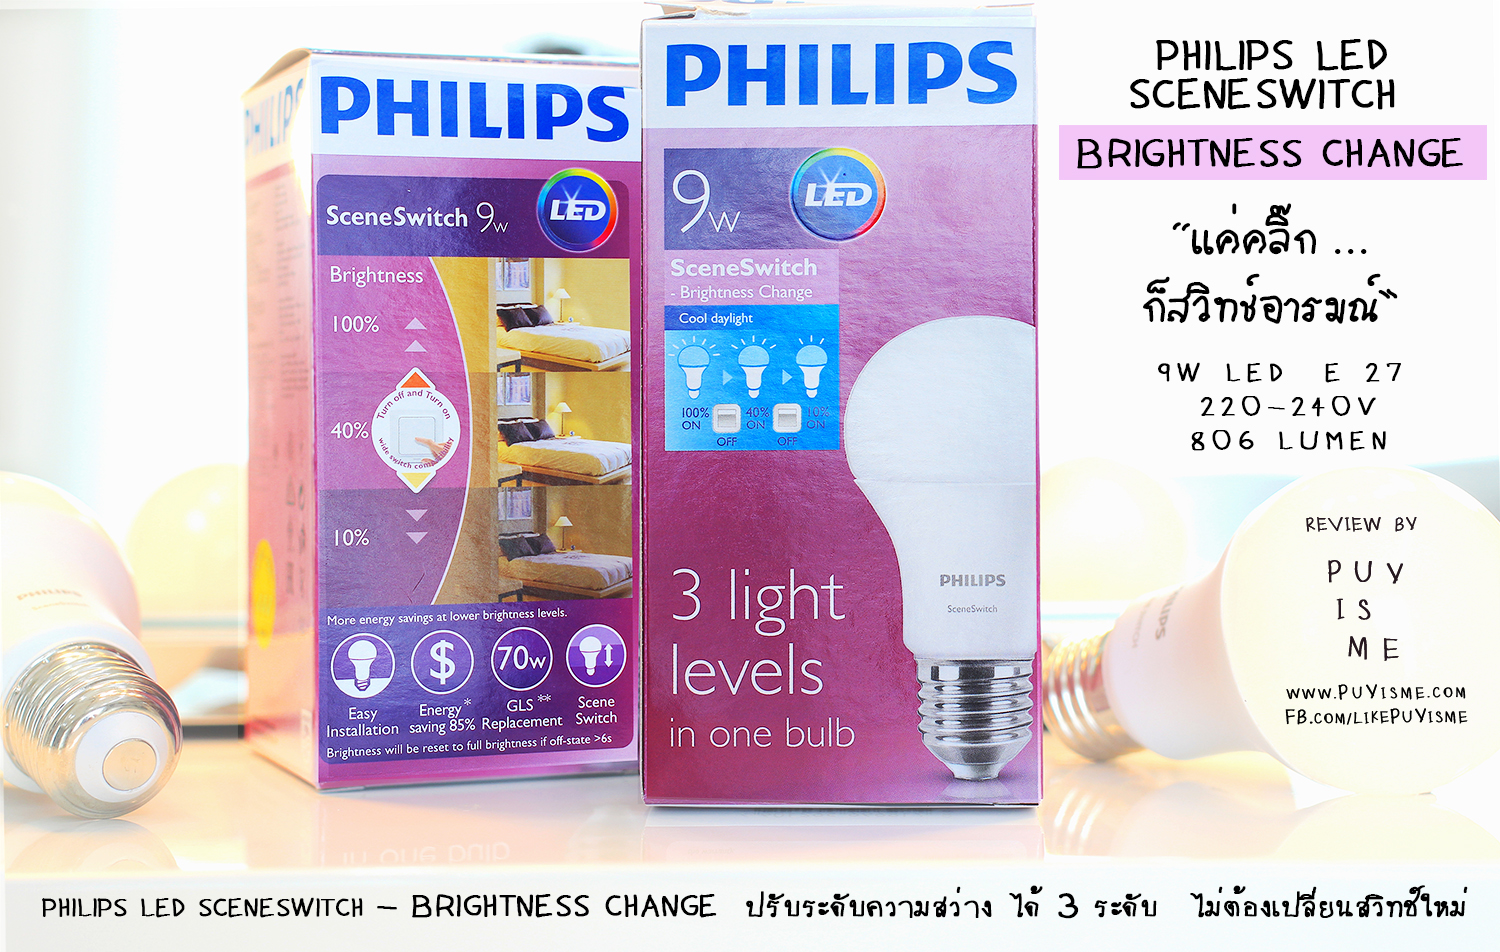 Philips - Brightness Change 04